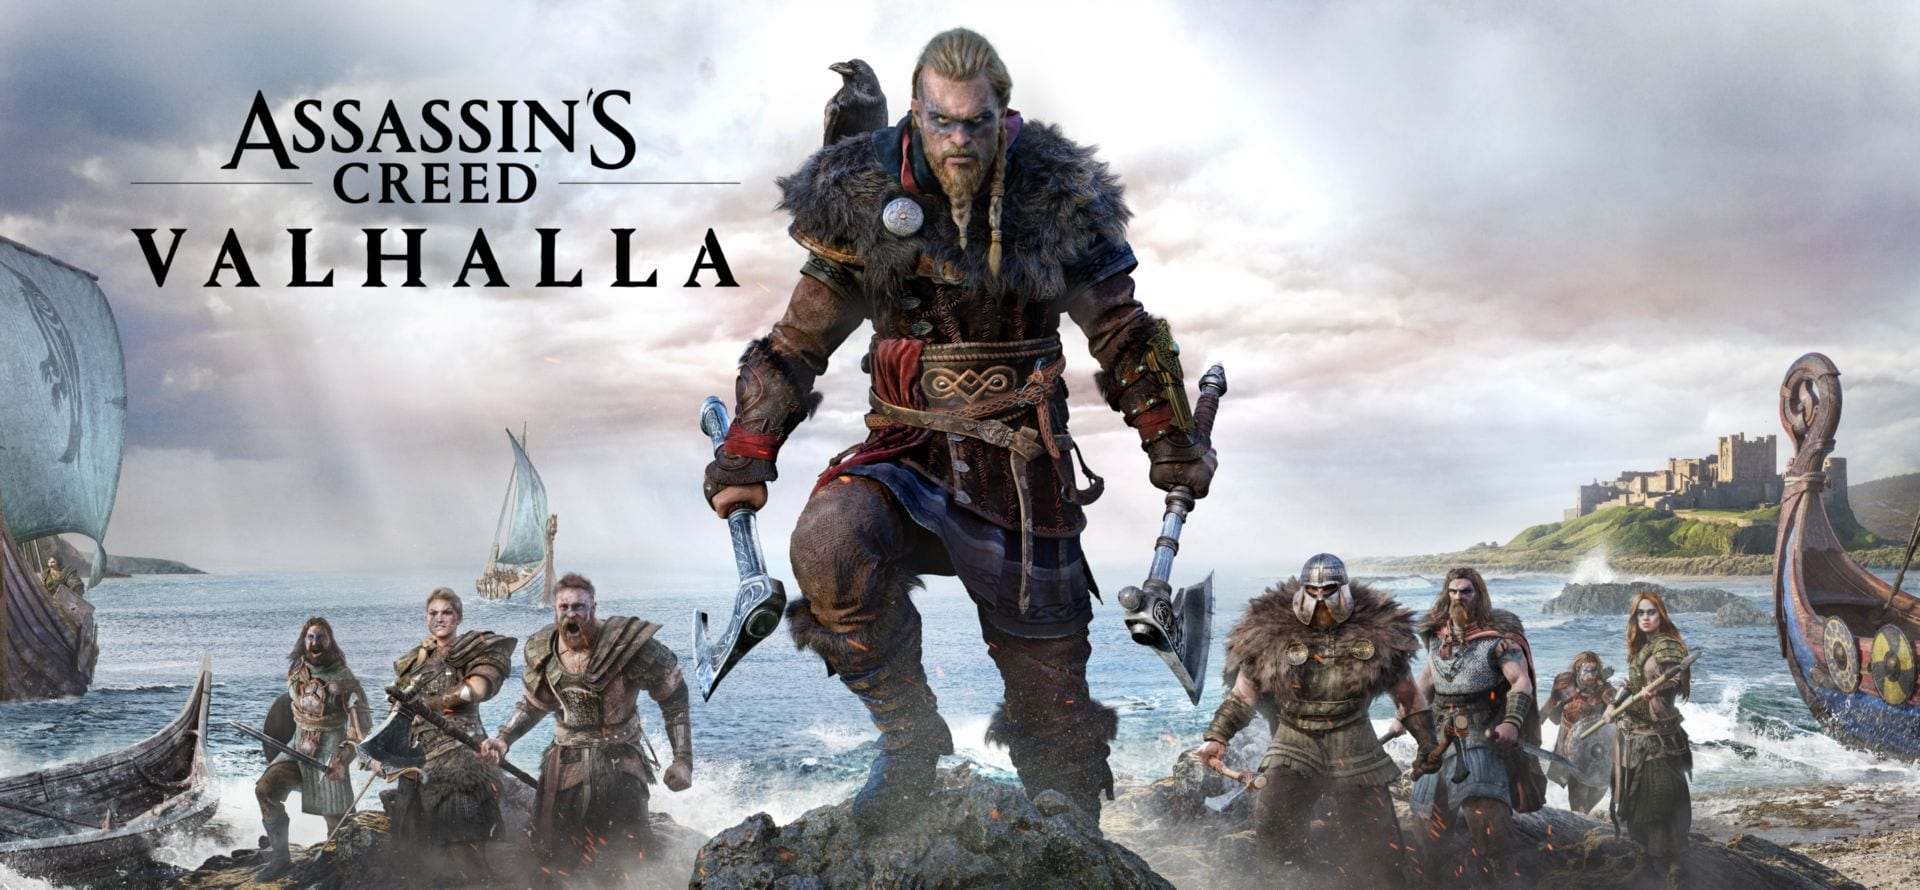 My Thought's on the Assassin's Creed Valhalla Announcement.